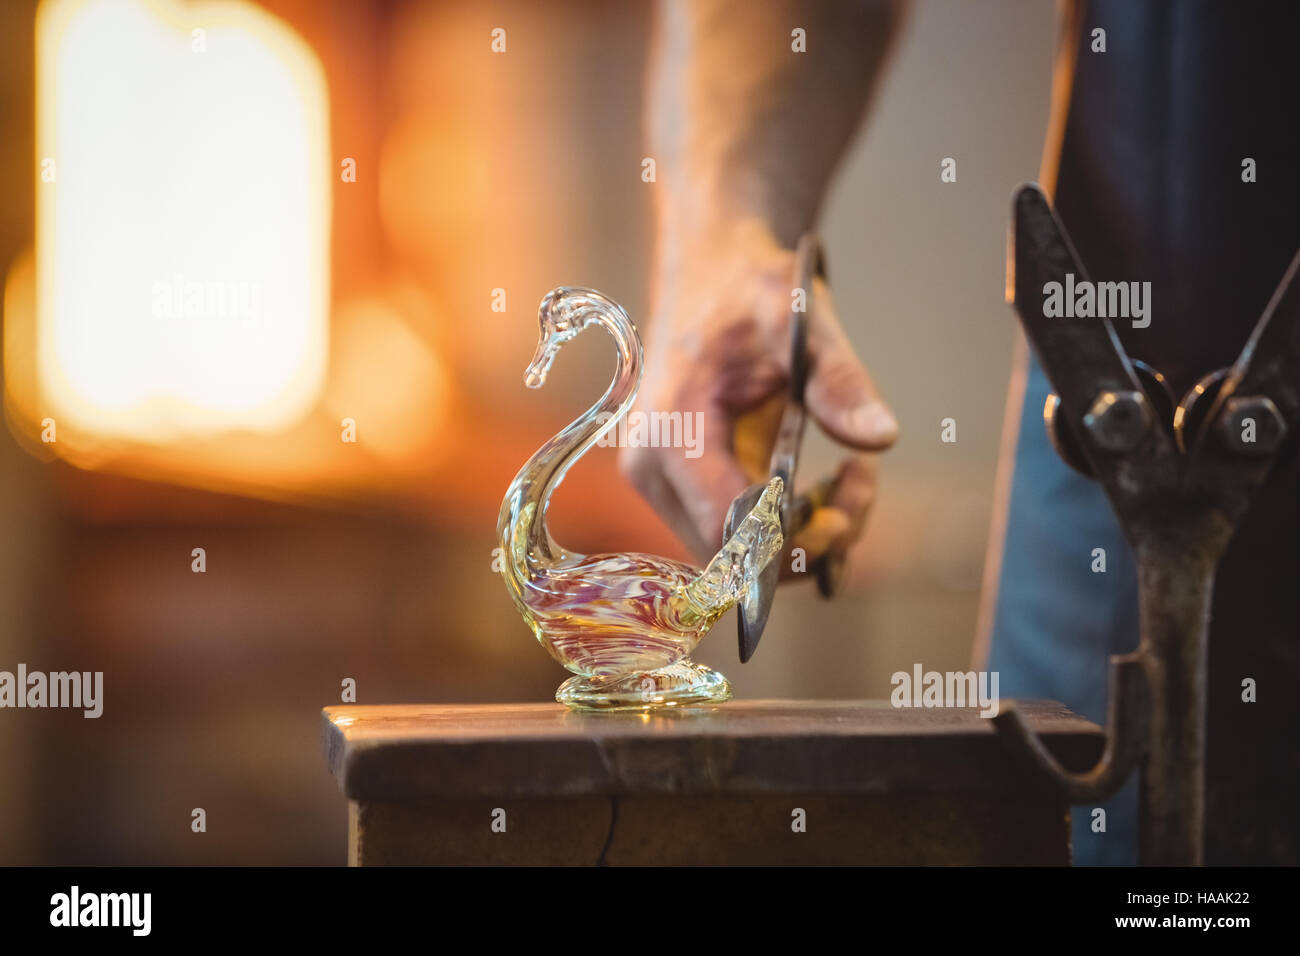 Glassblower shaping a molten glass - Stock Image